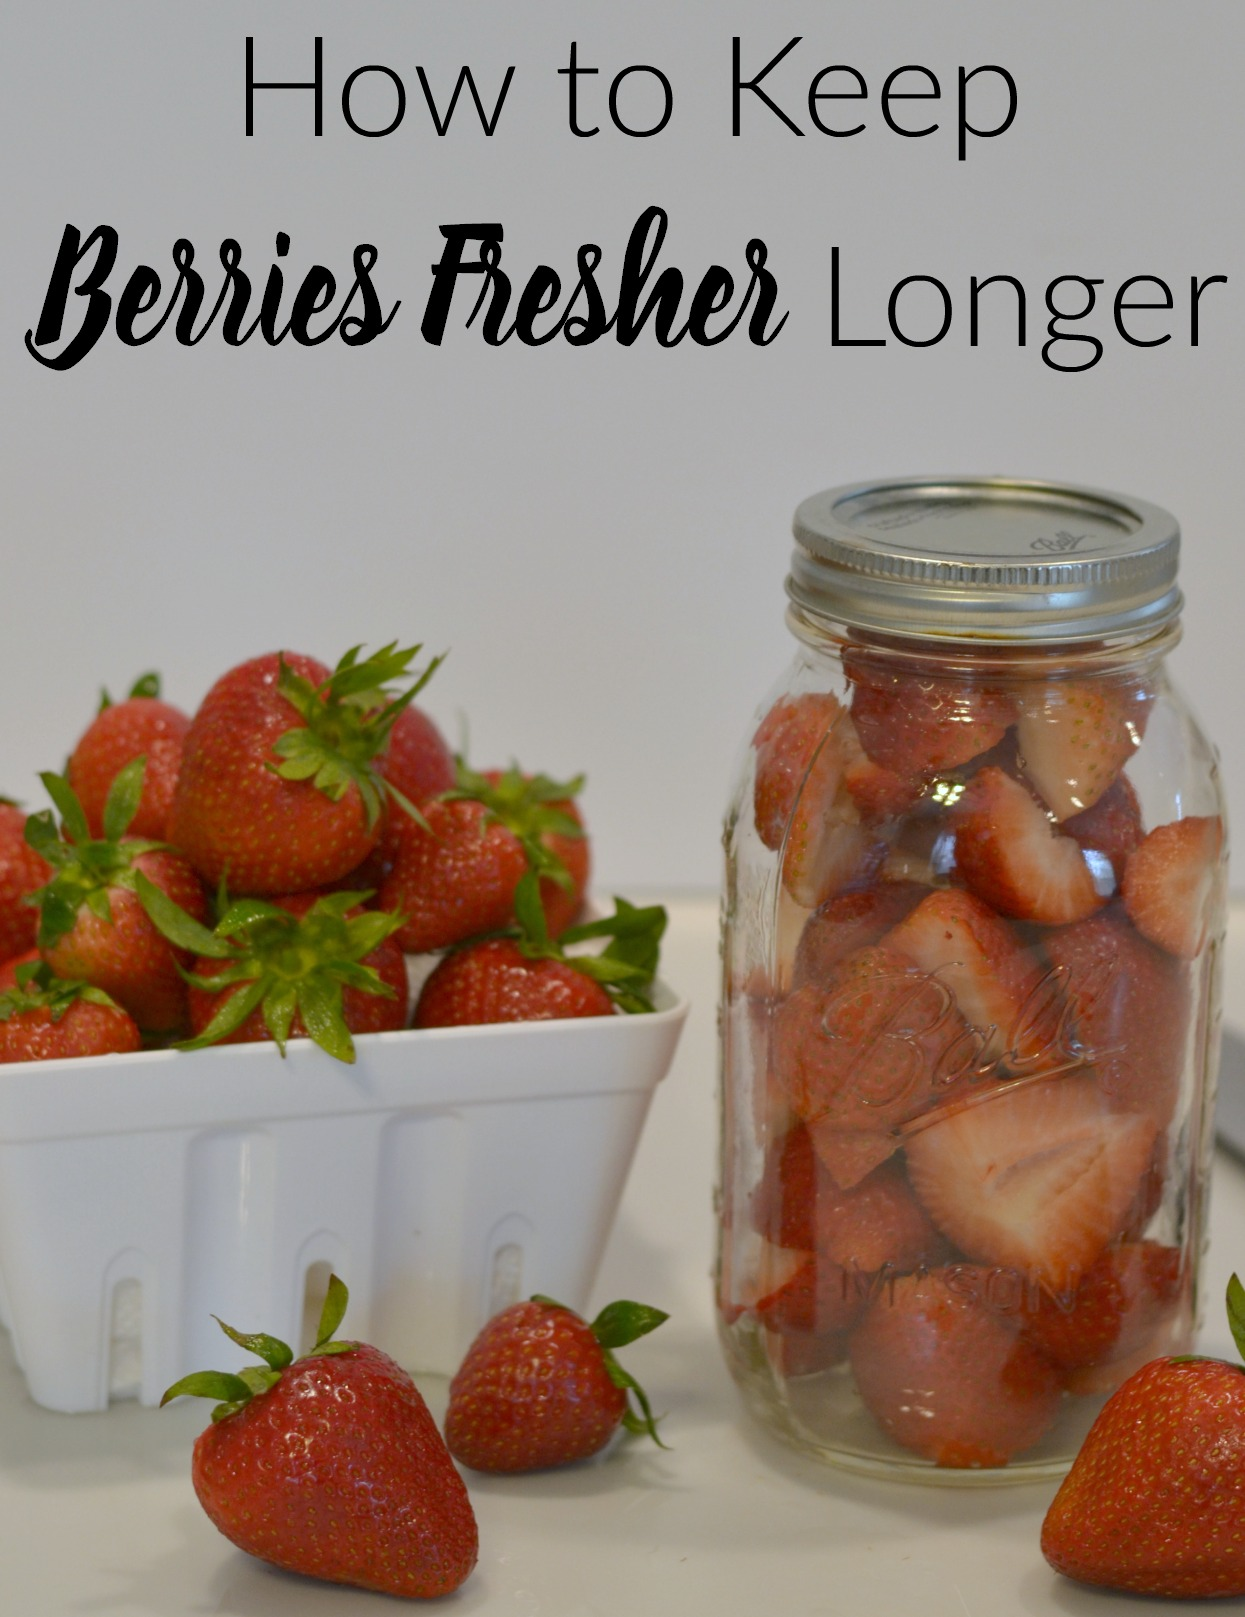 How to Keep Berries Fresher Longer! These tips are easy, cheap and they work!